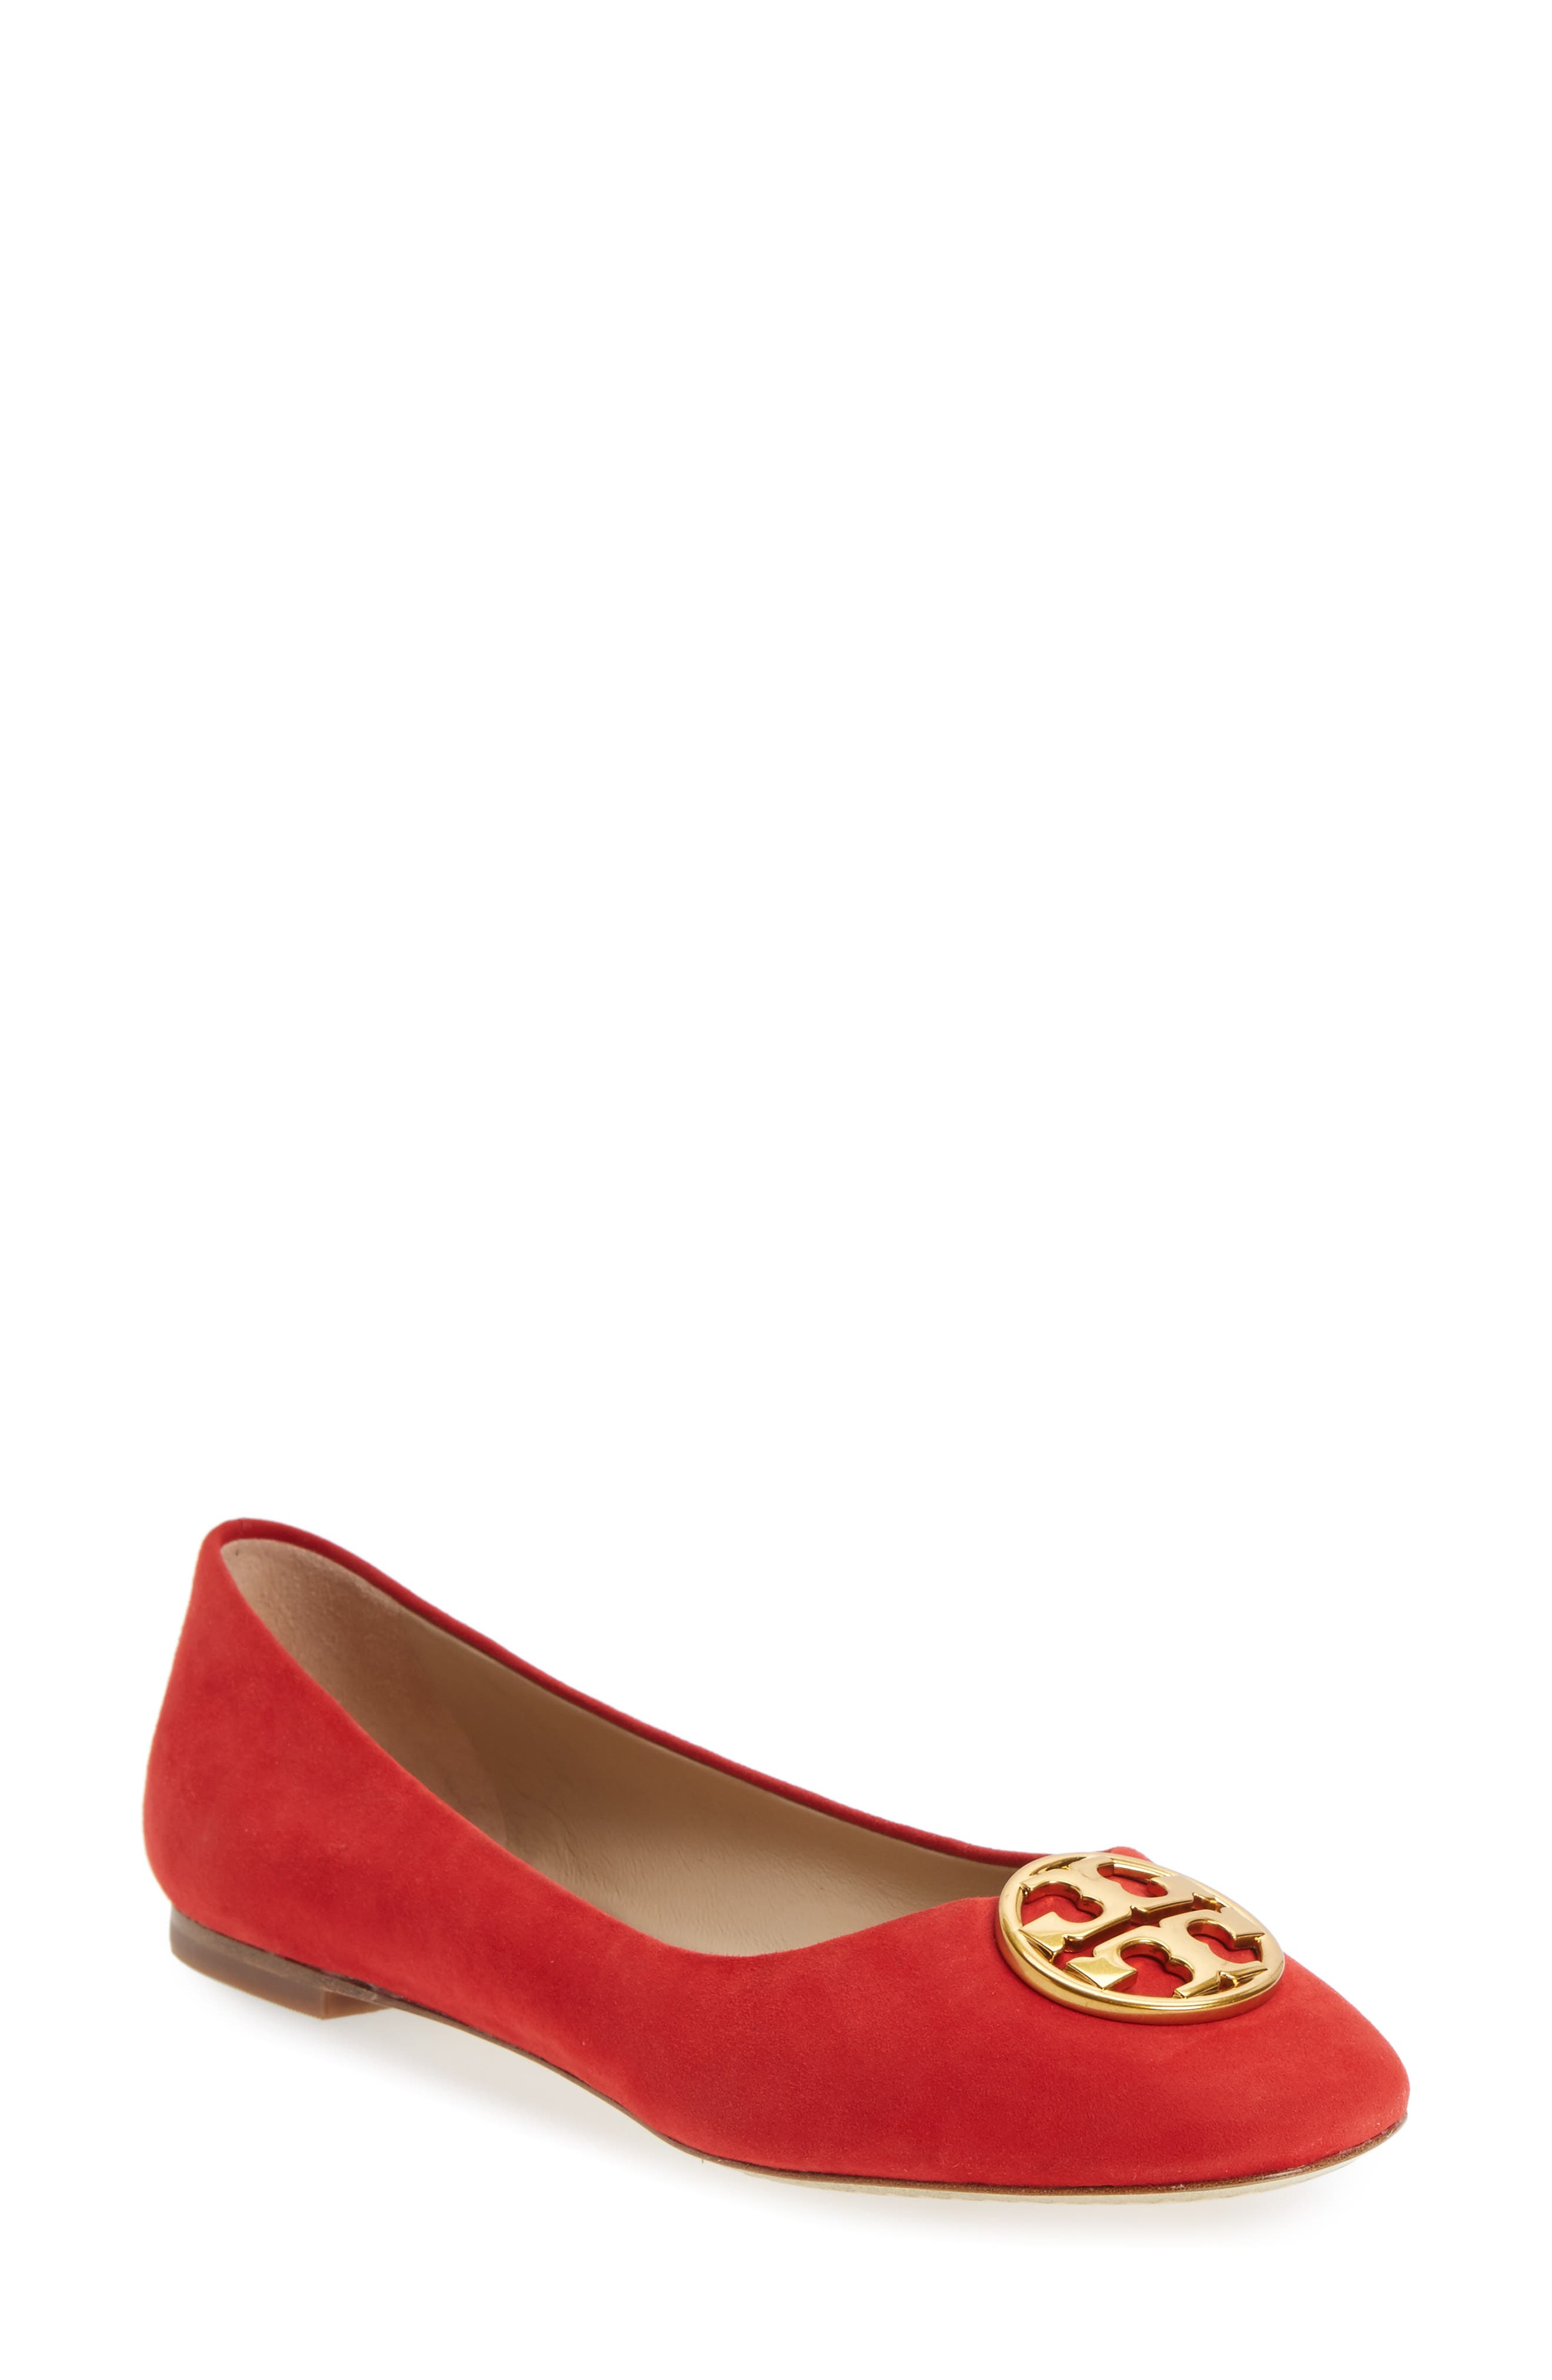 Chelsea Ballet Flat,                         Main,                         color, Liberty Red